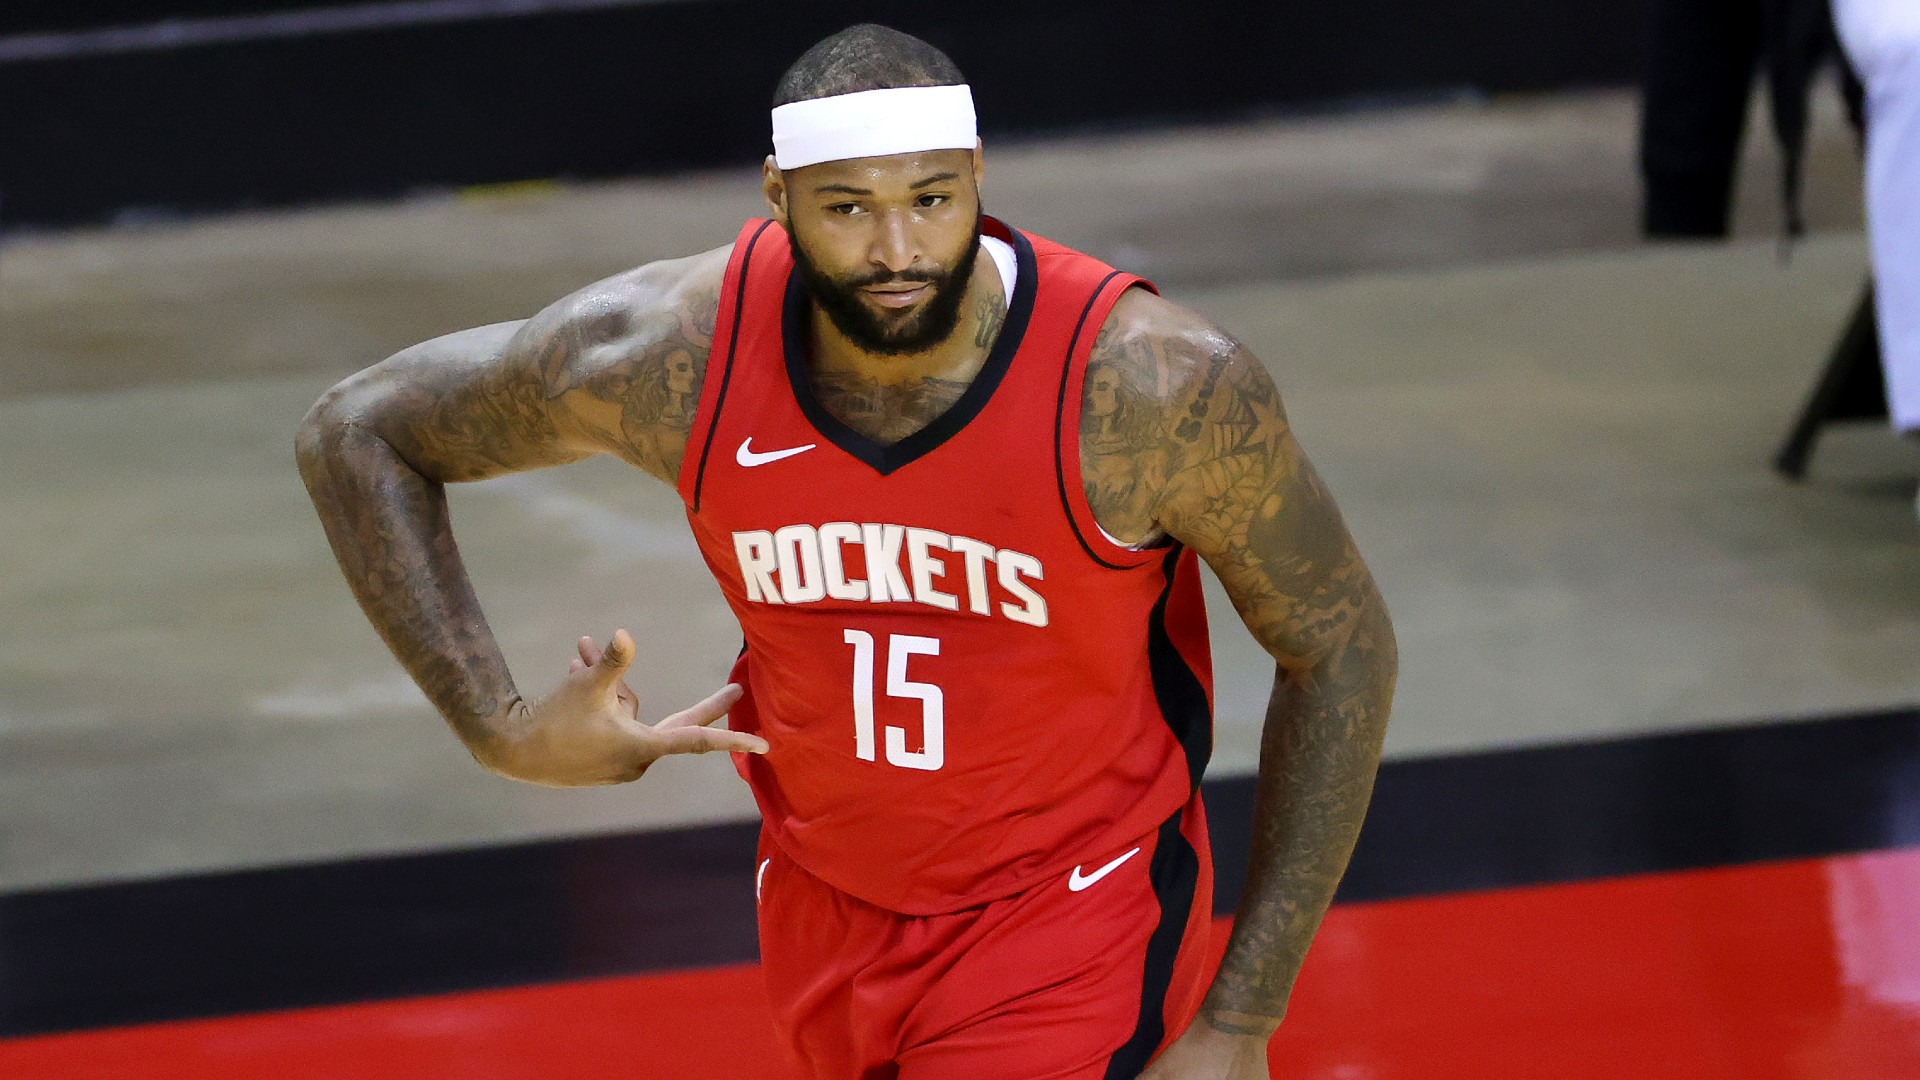 Rockets DeMarcus Cousins rips disrespectful James Harden Its completely unfair to us